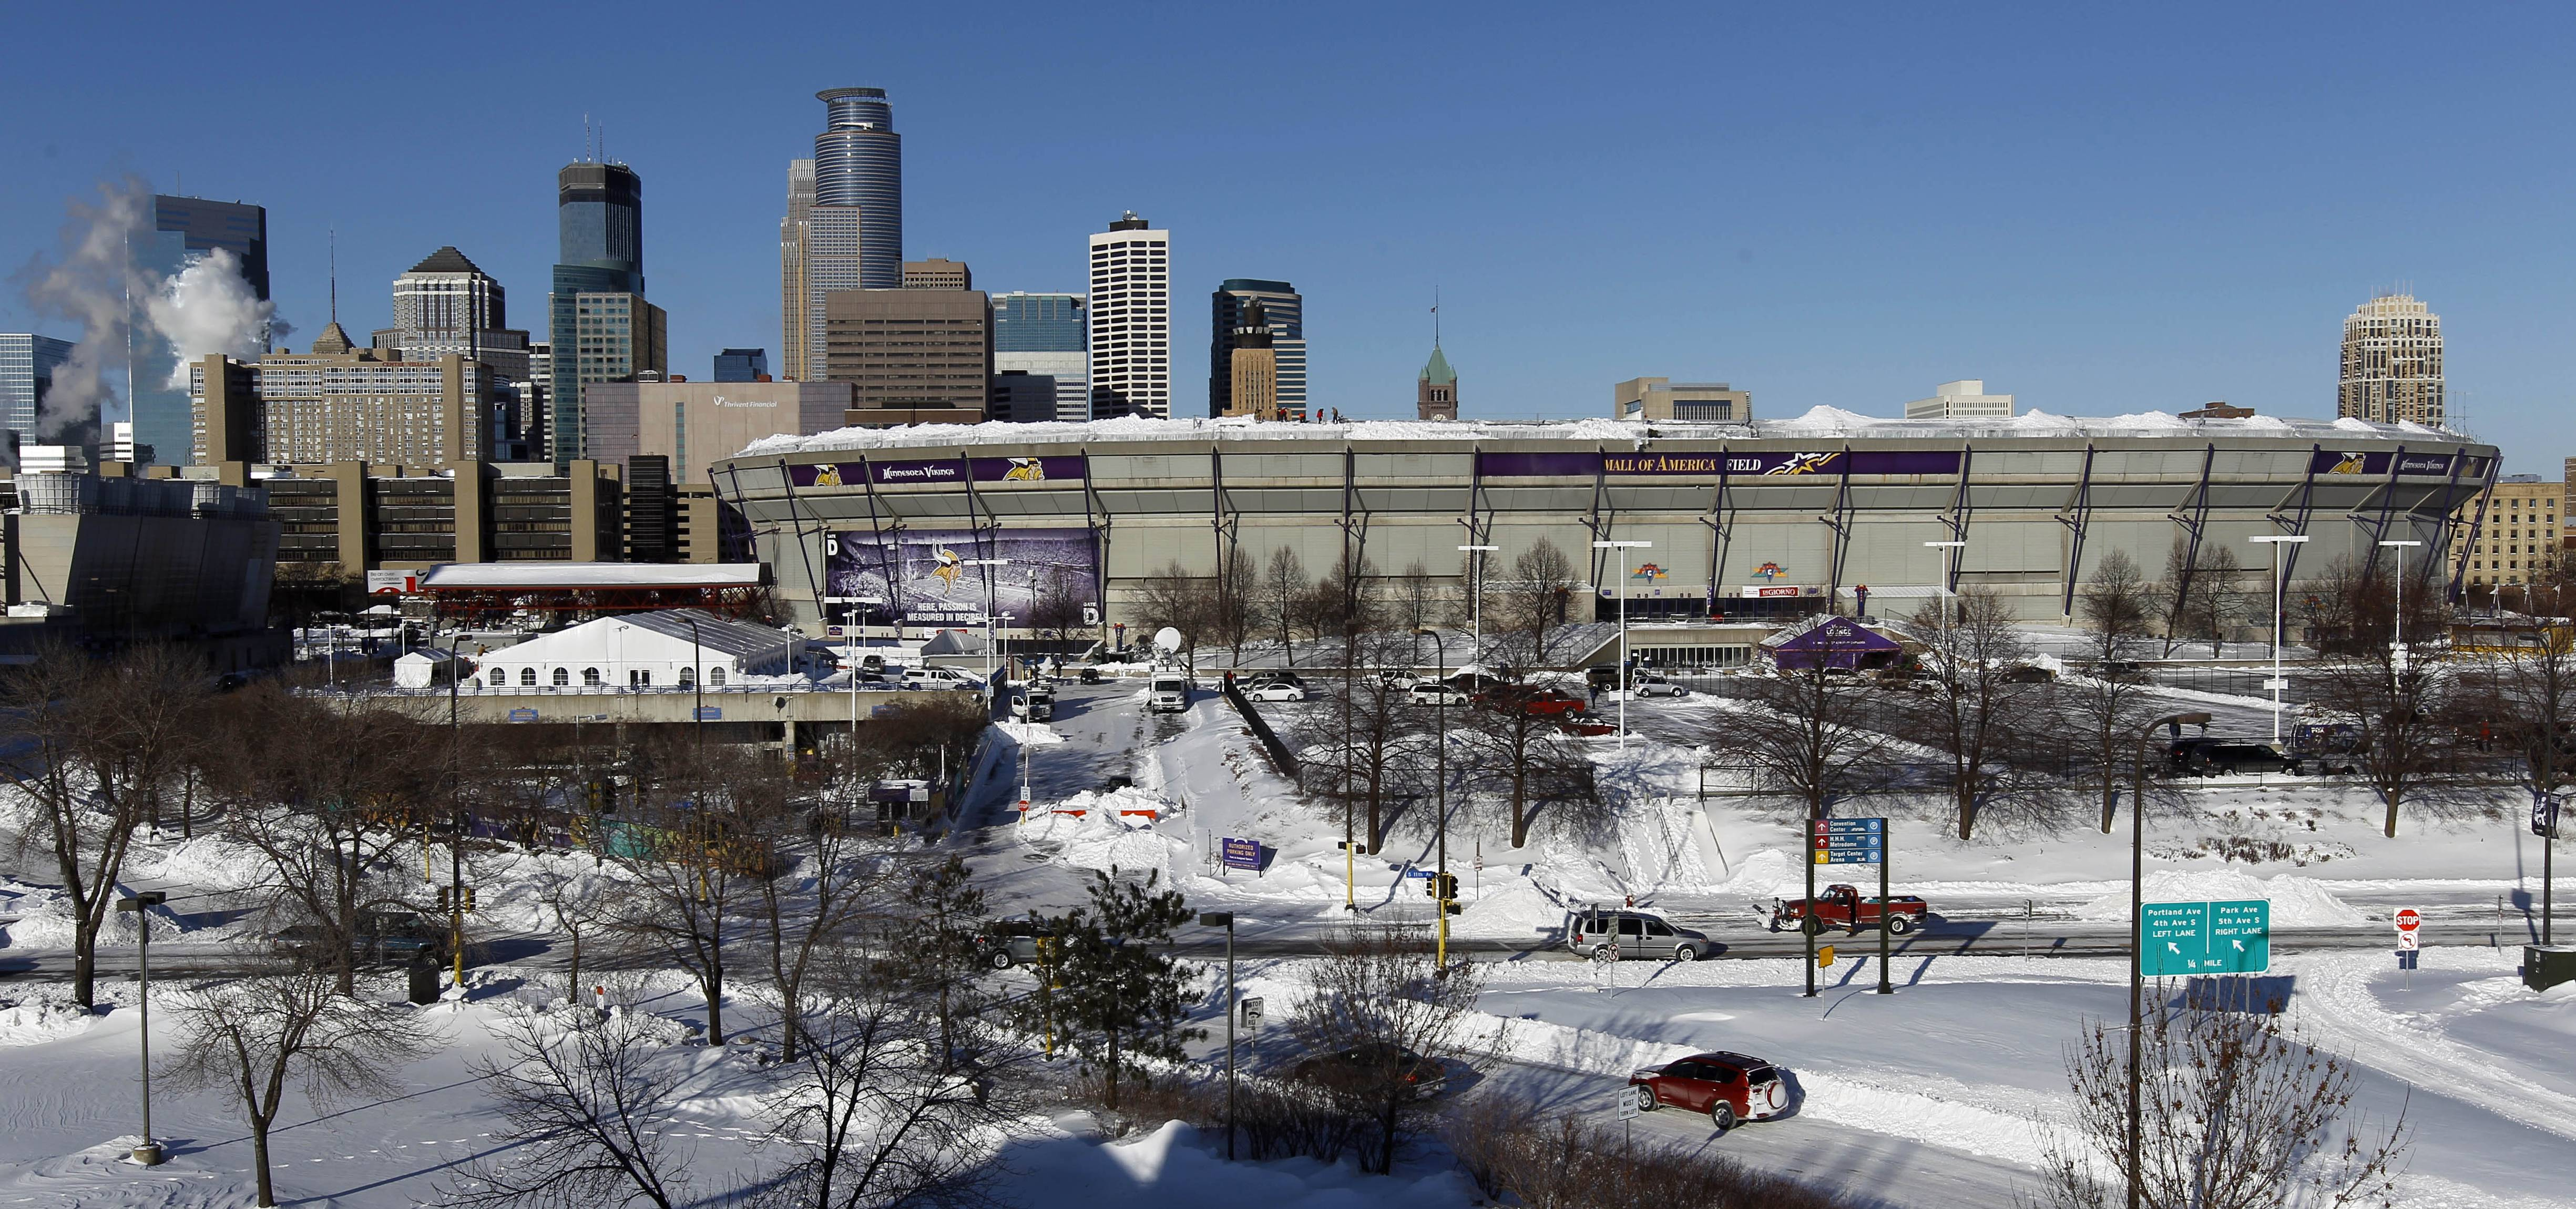 The snowstorm that pushed the New York Giants-Minnesota Vikings game back a day has caused a partial collapse of the Metrodome's inflated roof.